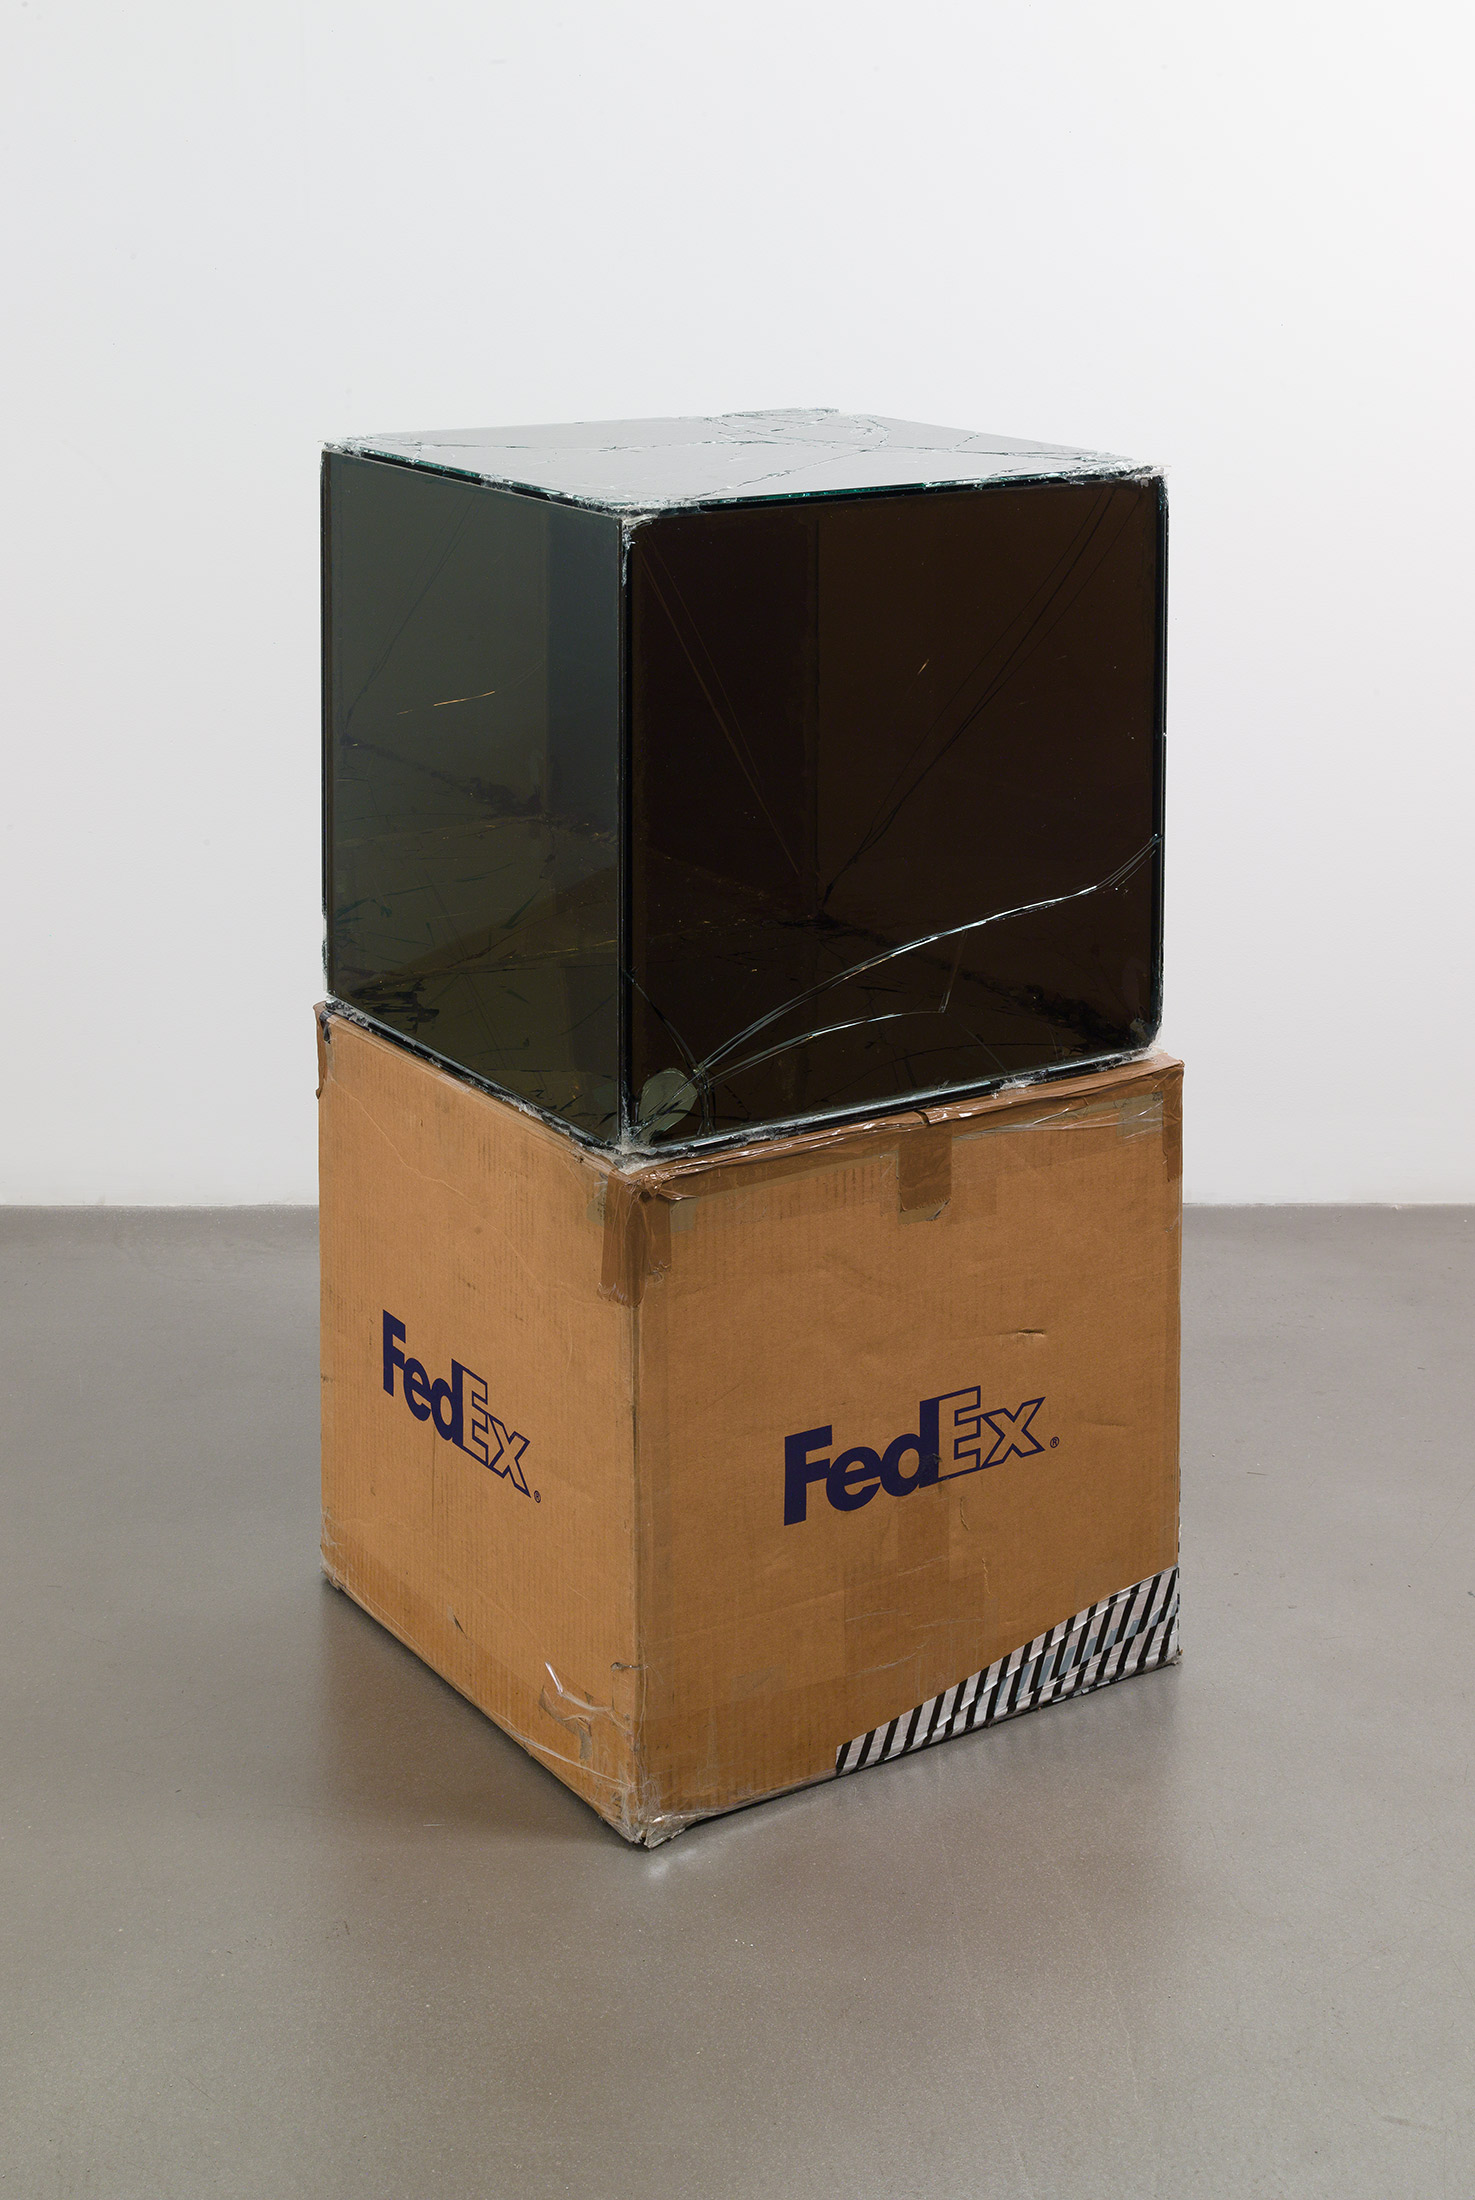 FedEx® Large Kraft Box  © 2005 FEDEX 330508 REV 10/05 SSCC, Standard Overnight, Los Angeles–Oak Park trk#865344981196, September 17–18, 2008, Standard Overnight, Oak Park–Los Angeles trk#865326699753, March 12–13, 2009, Standard Overnight, Los Angeles–New York trk#774901624186, November 4–5, 2015, Standard Overnight, New York–Los Angeles trk#775241295627, December 21–22, 2015    2008–   Laminated Mirropane, FedEx shipping box, accrued FedEx shipping and tracking labels, silicone, metal, tape  20 x 20 x 20 inches   Great Hall Exhibition, 2015